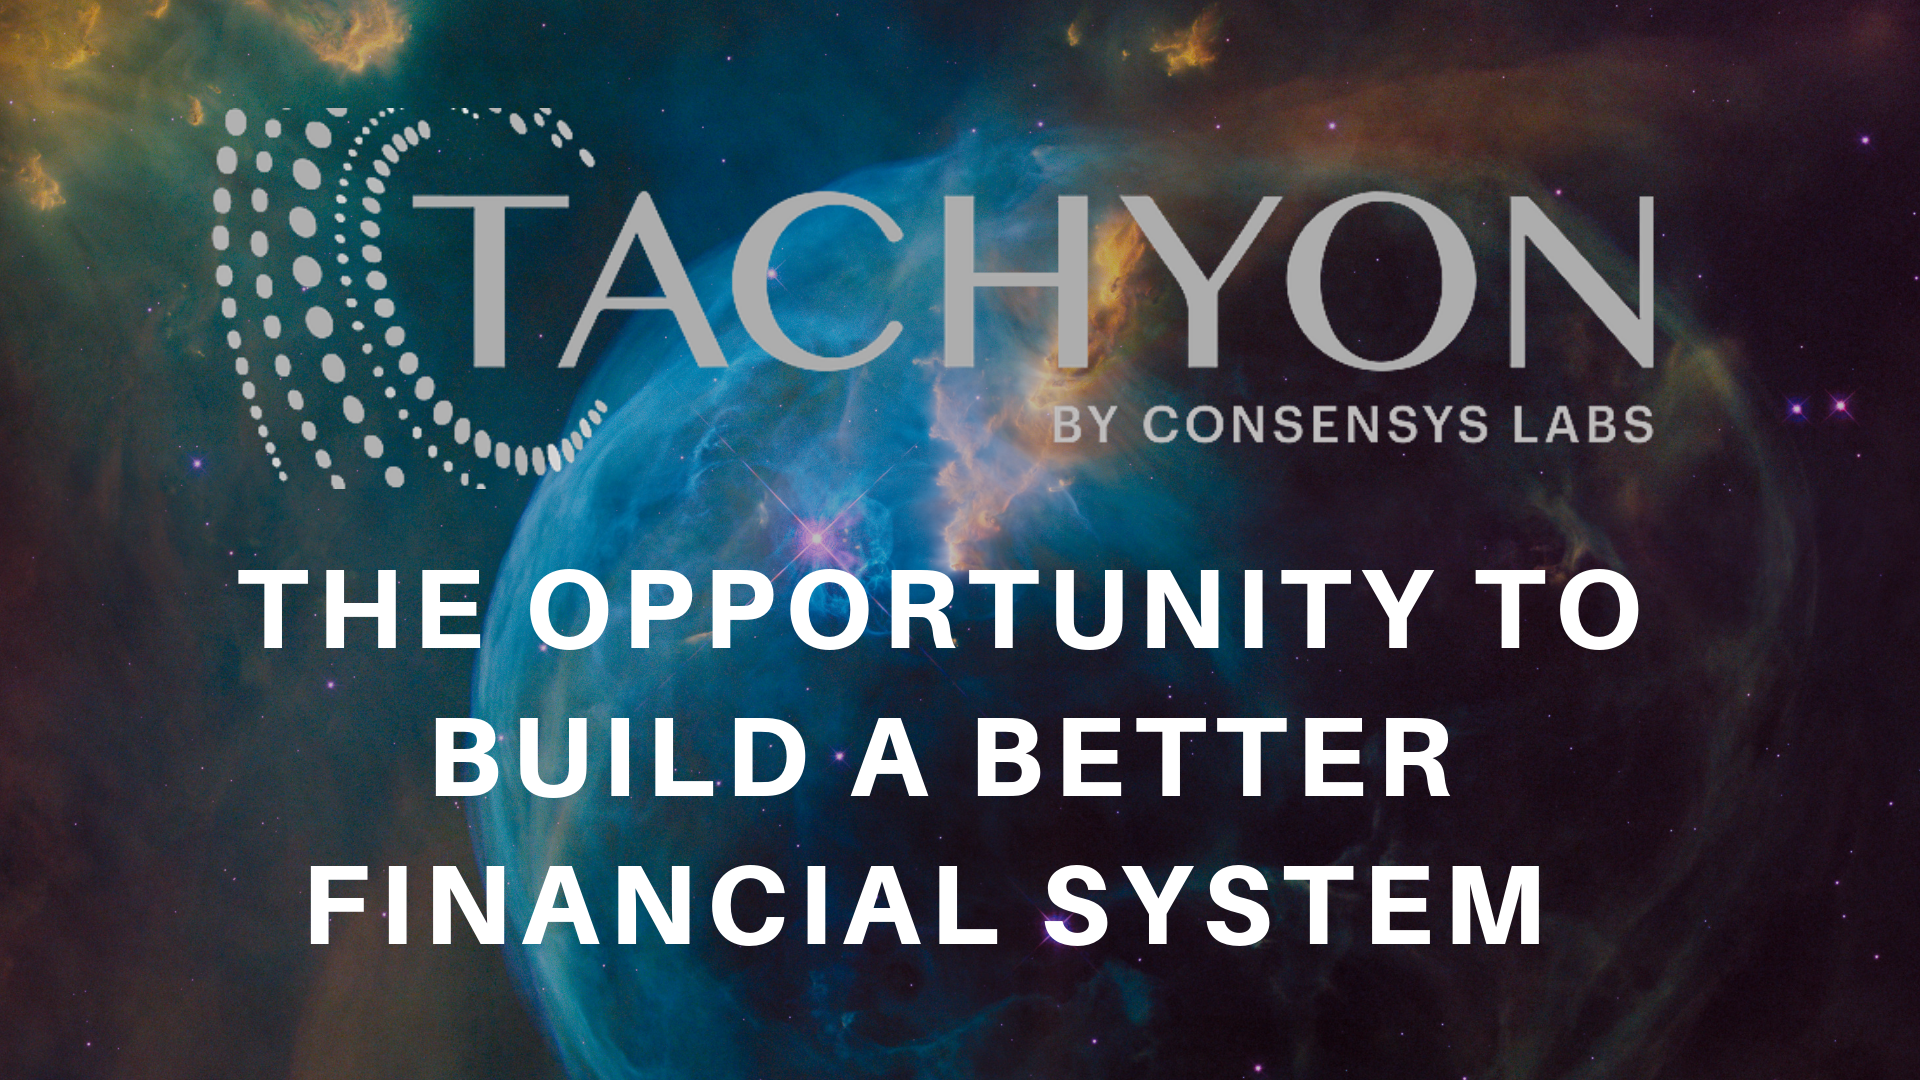 Tachyon Iii The Opportunity For Open Finance By Consensys Consensys Media